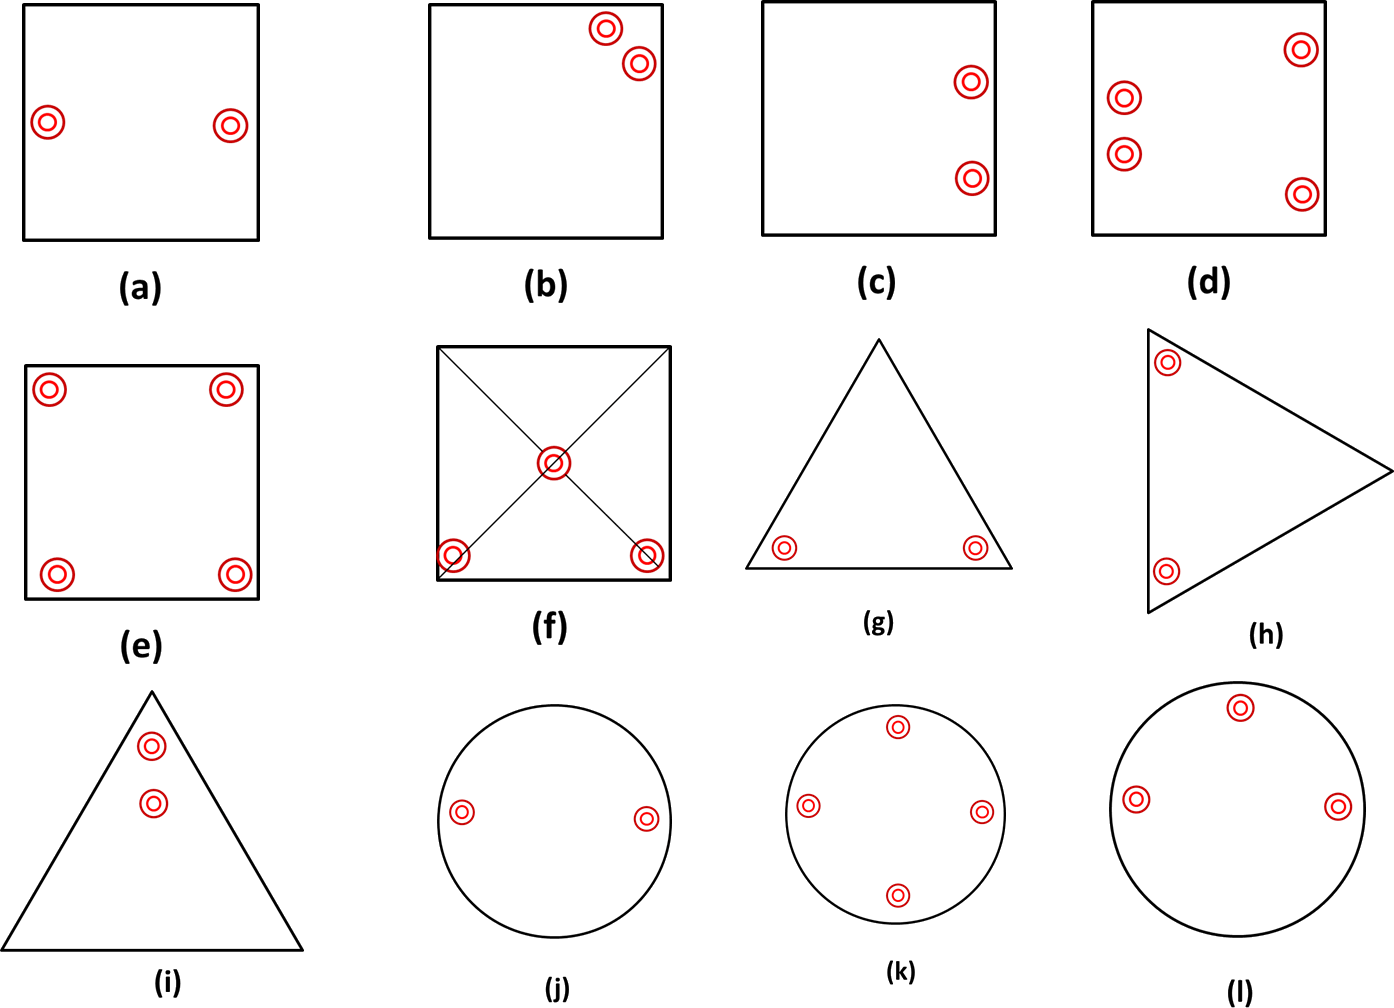 Find the axes of symmetry for each of the following